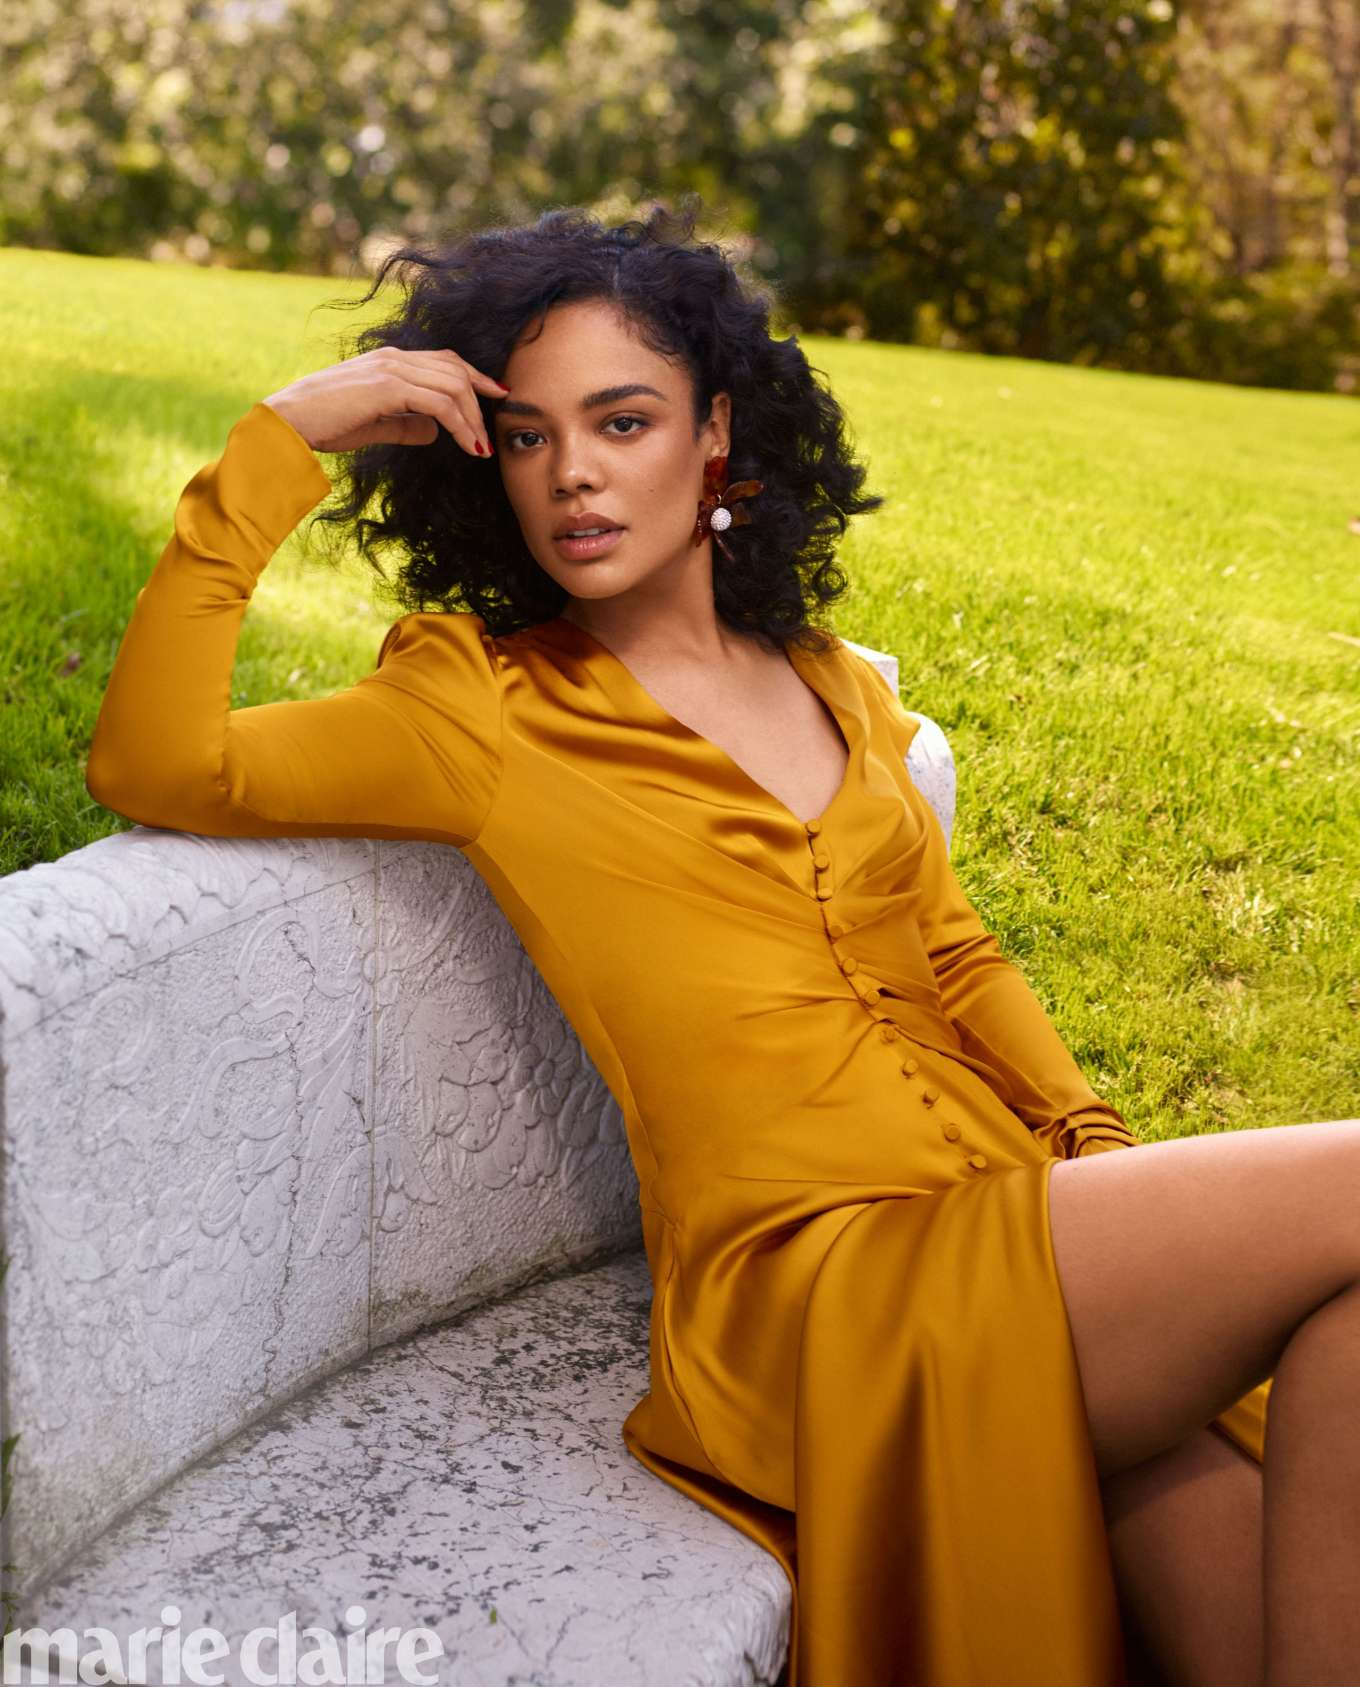 Tessa Thompson 2019 : Tessa Thompson: Marie Claire US 2019-05